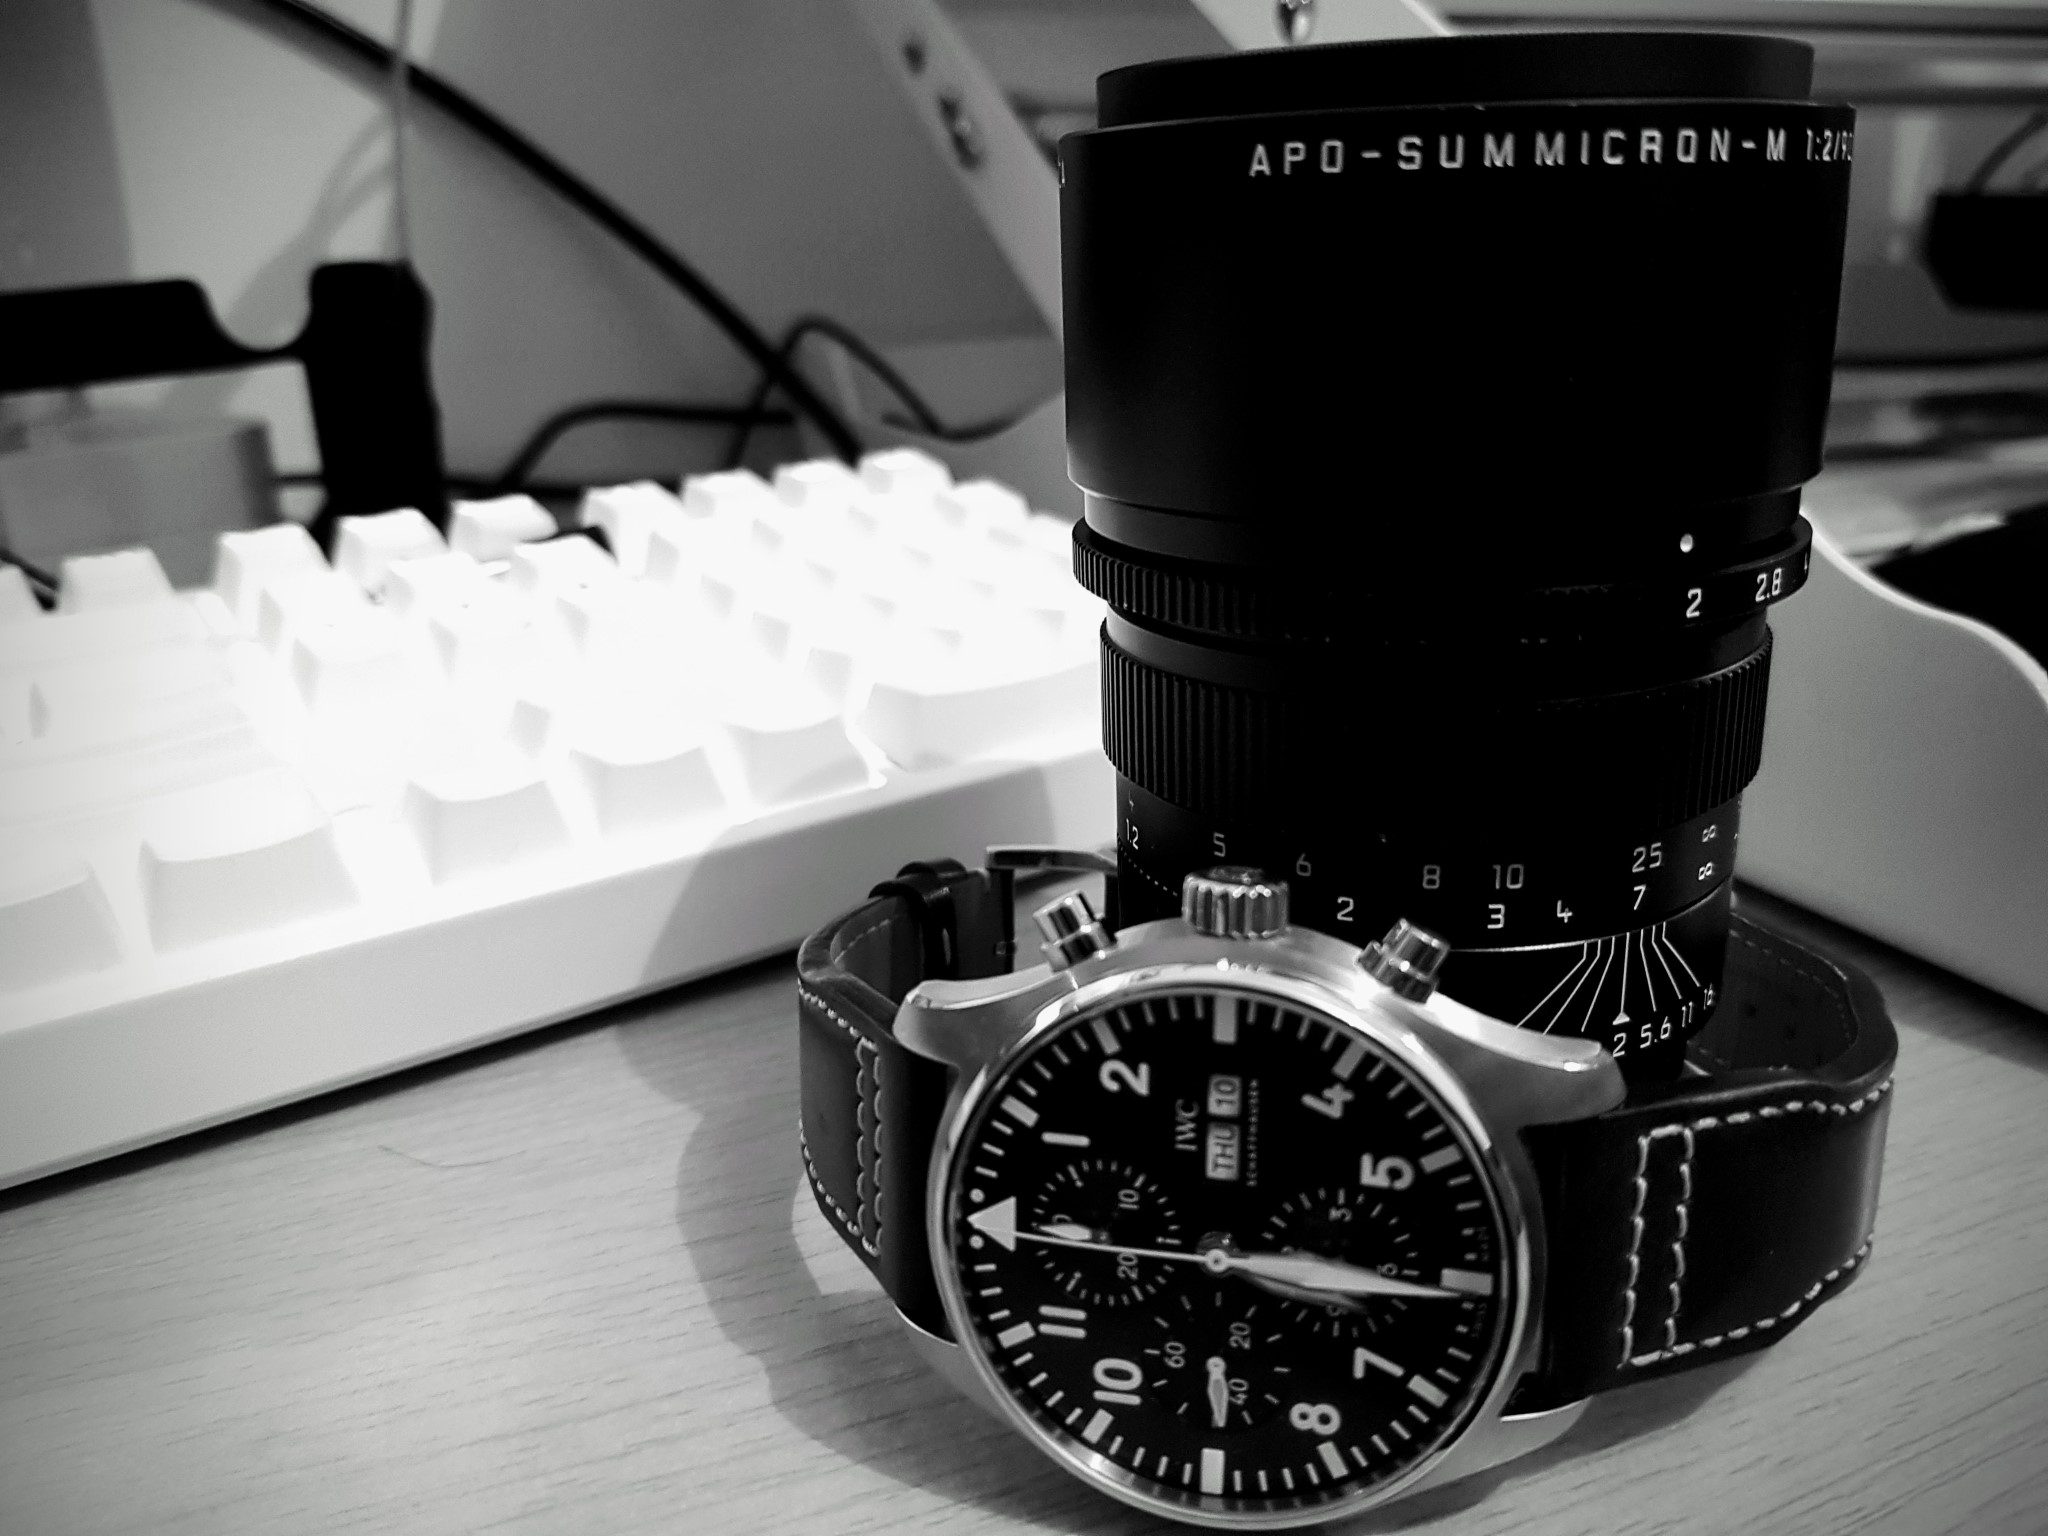 IWC Watch Lens Leica